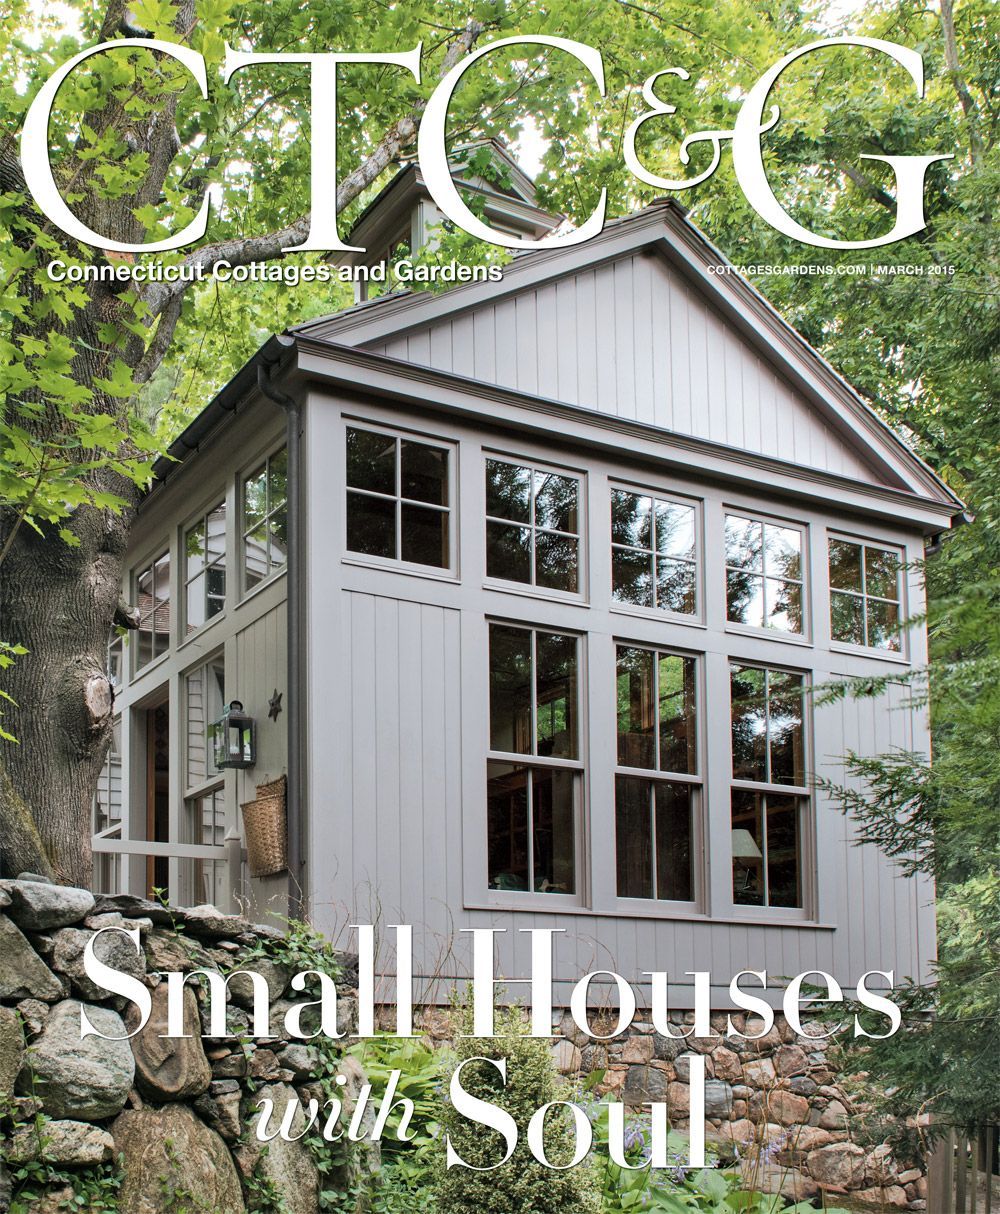 CTC&G March 2015 Issue Featuring Wilton, Connecticut